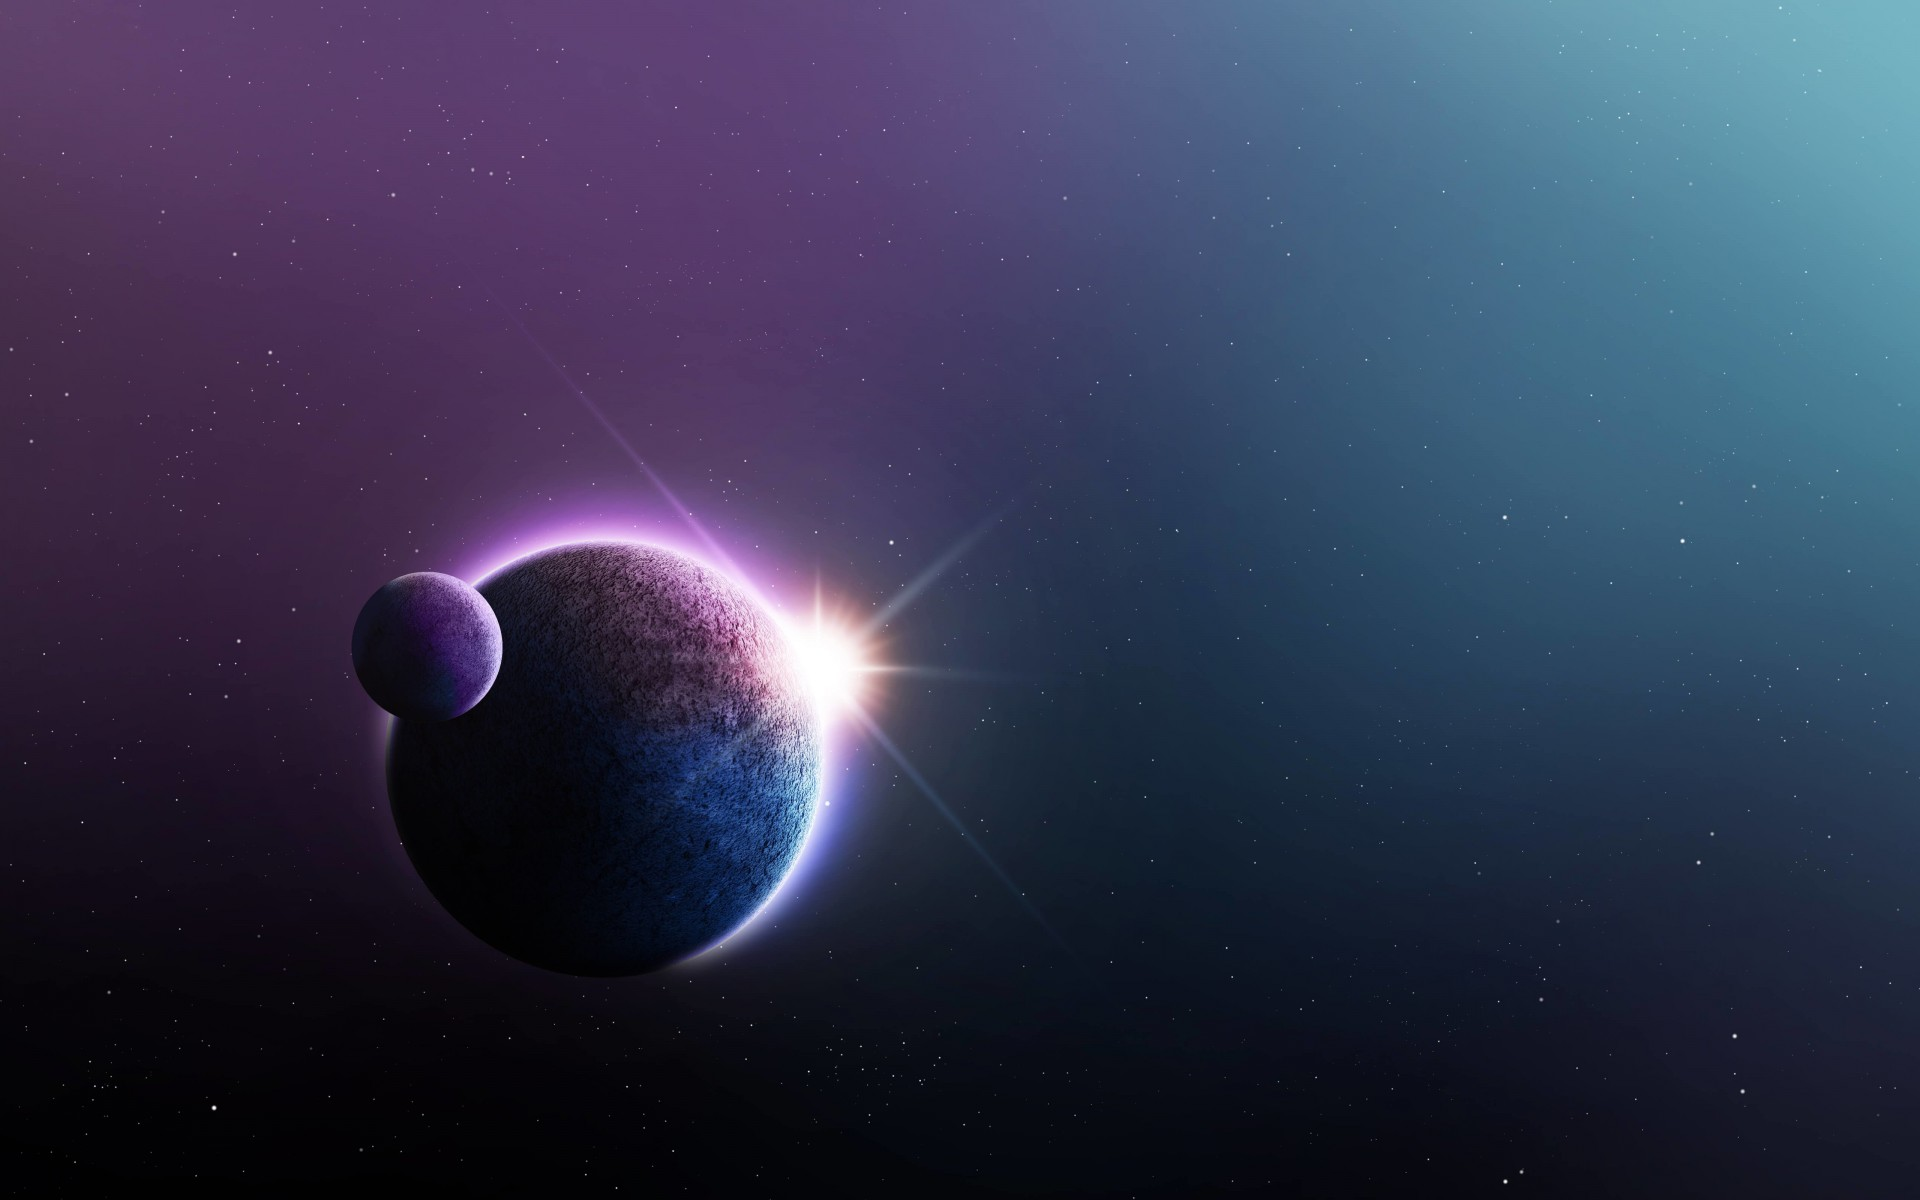 Far-Off Planets Wallpaper for Desktop 1920x1200